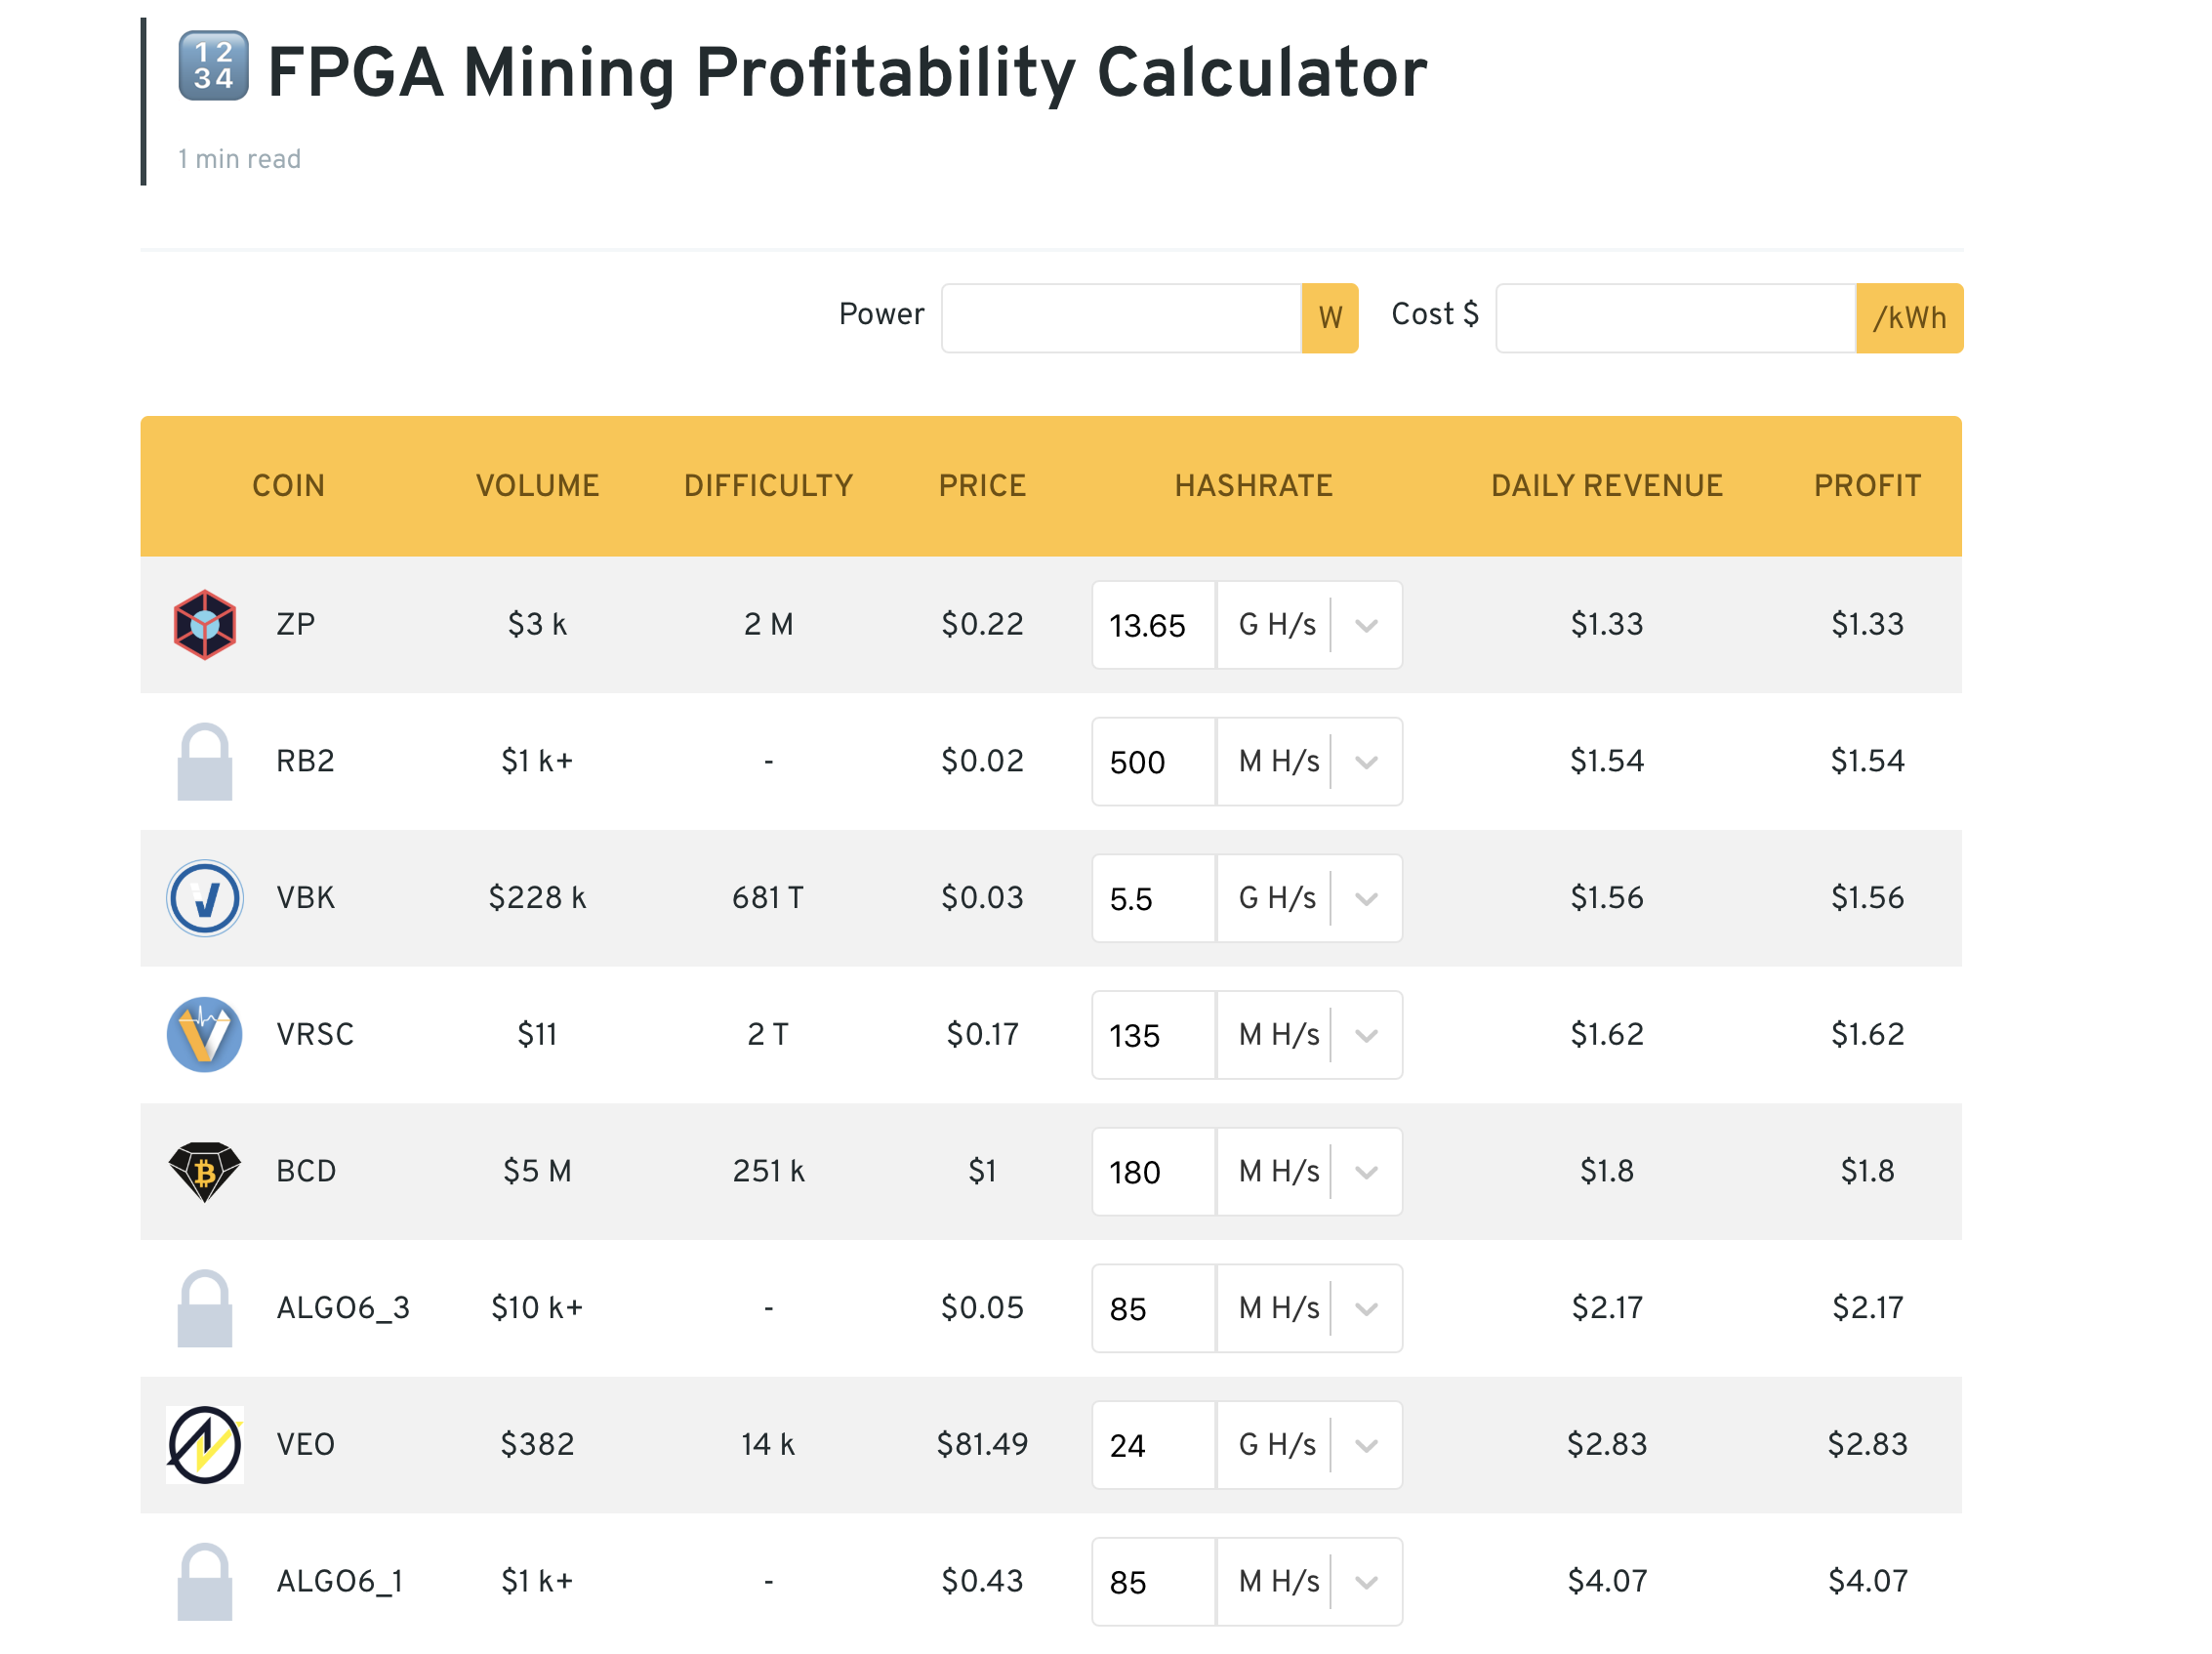 FPGA.guide Mining Calculator